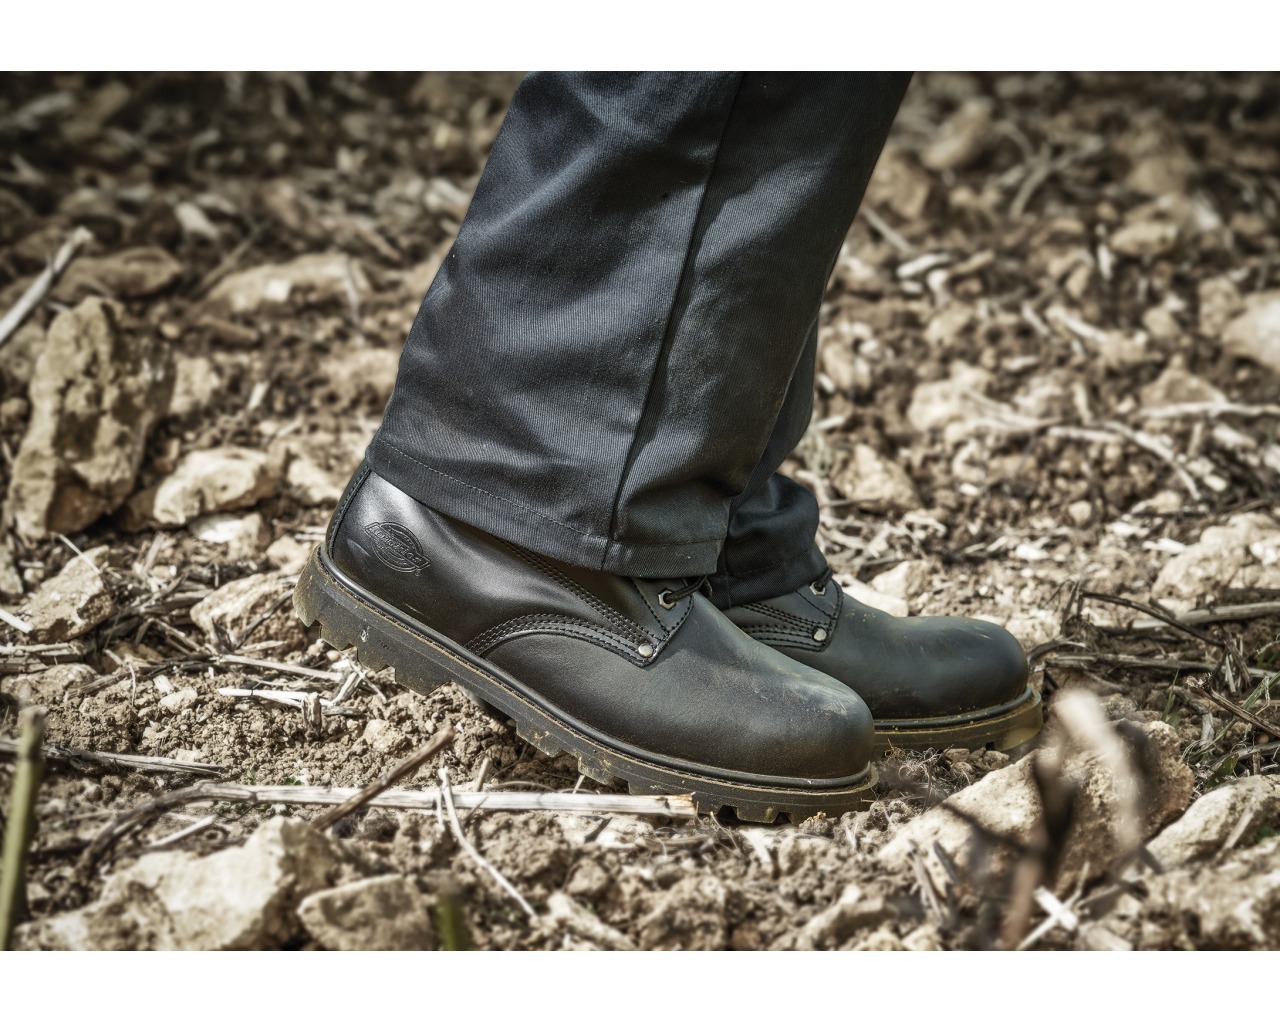 3e1d9cd8c60 Dickies Cleveland Super Safety Boot | Bodyguard Workwear